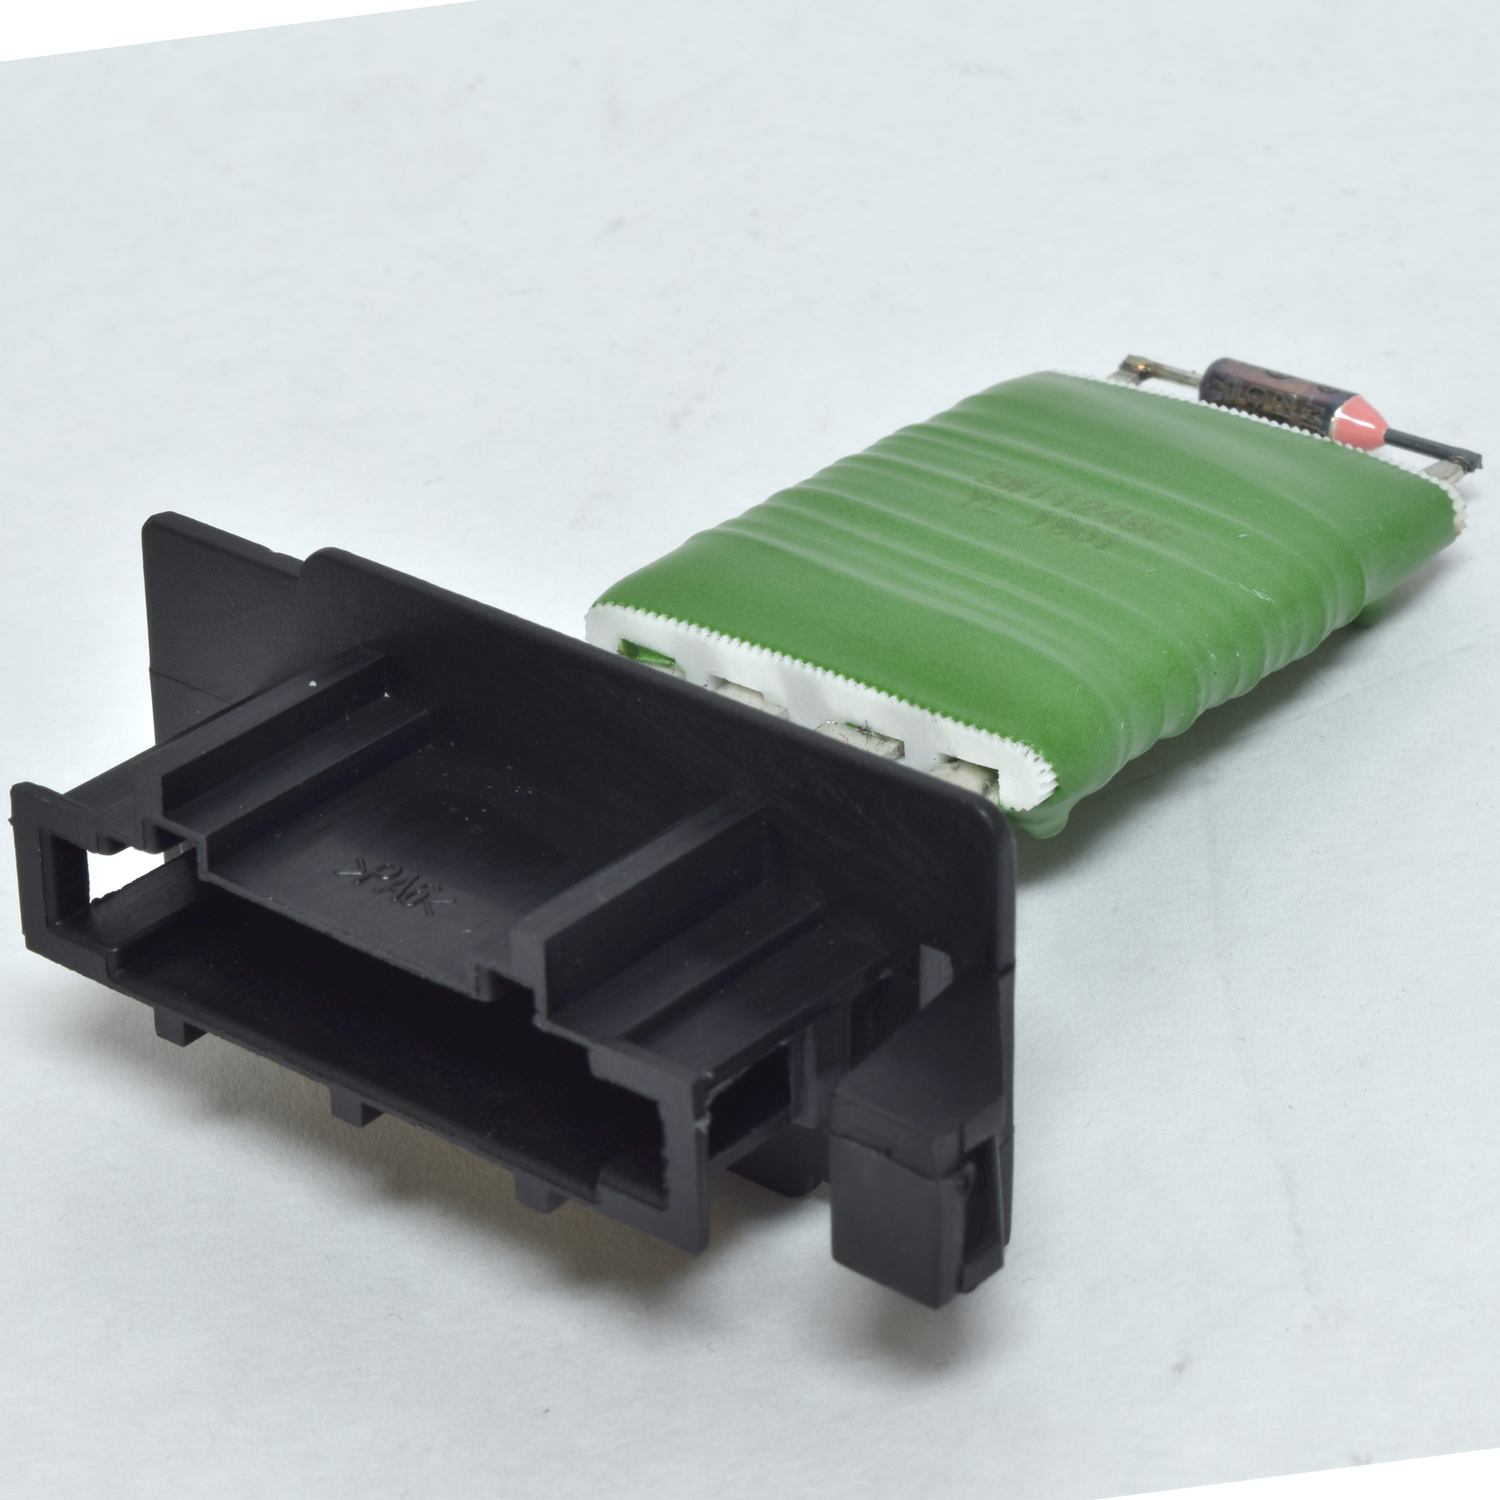 New Blower Motor Resistor for Sprinter Dodge 2500 3500 2003-2006